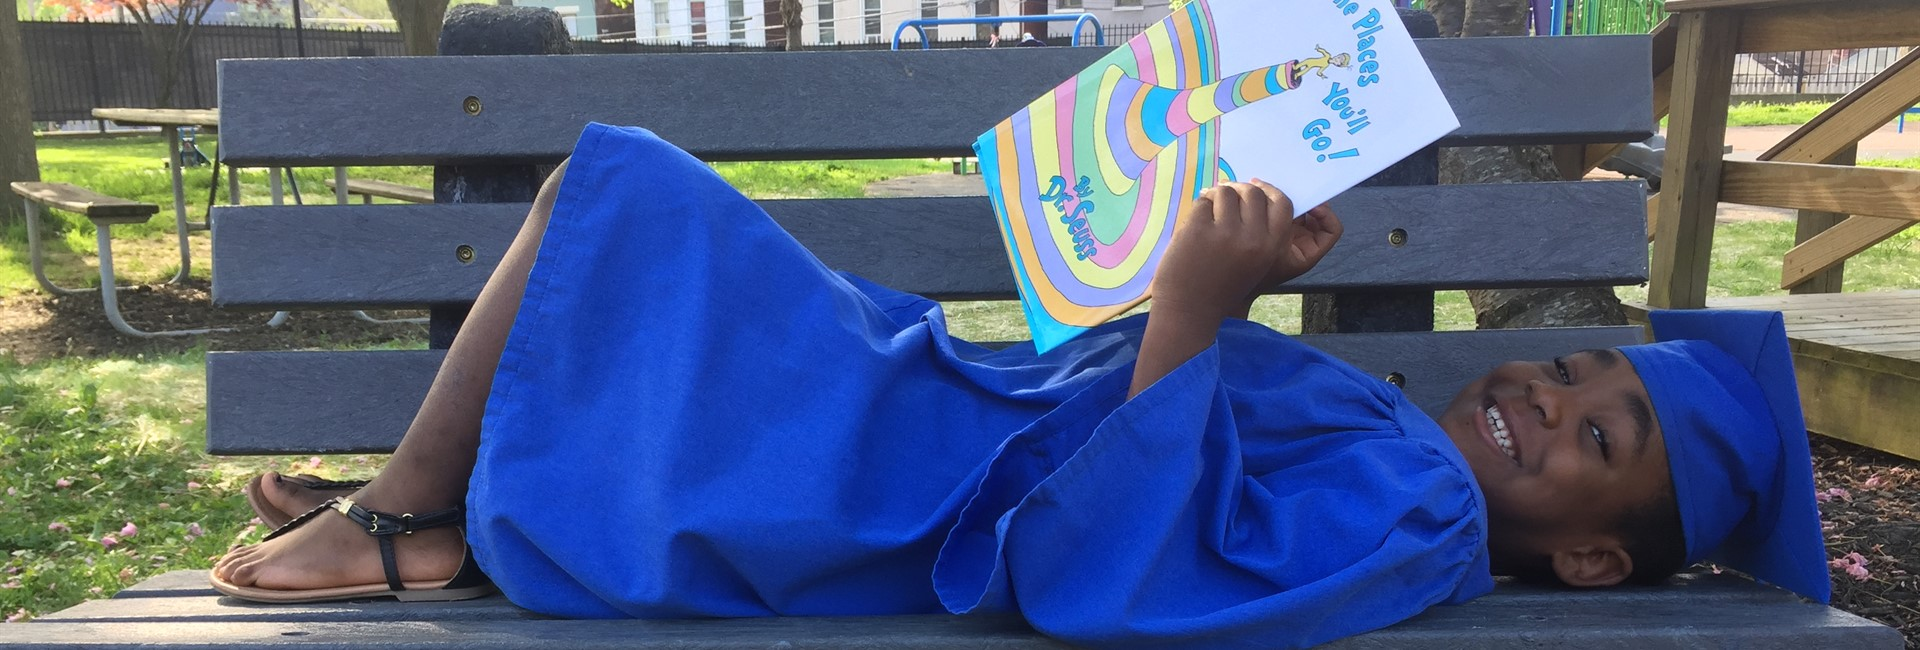 James E. Biggs preschool students are ready for graduation